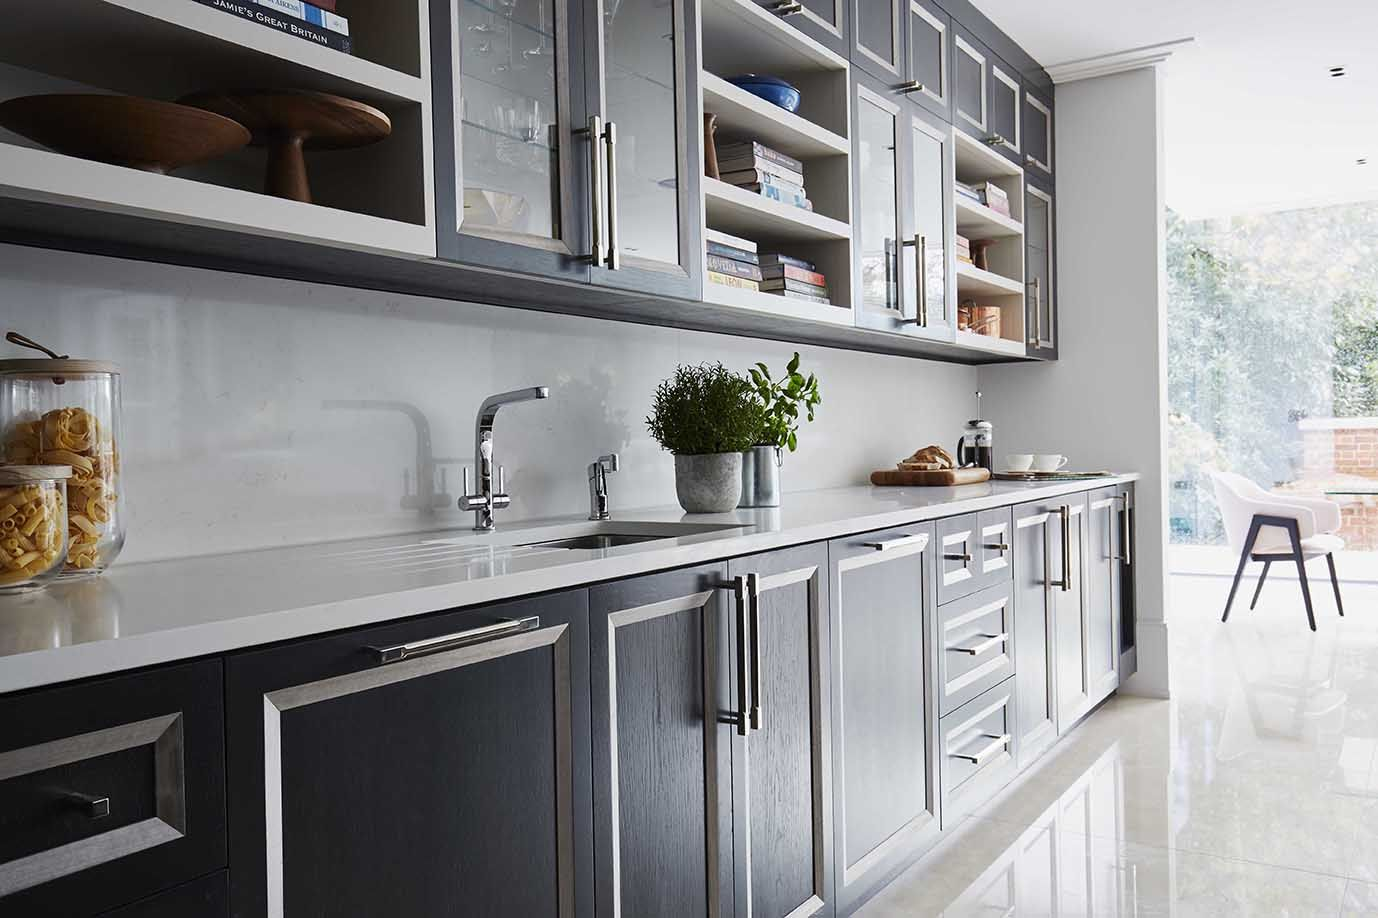 Charmant Richmond Kitchen | Dyed Oak Cabinets | #Kitchens #oakkitchen #dyedoak  #contemporarykitchen